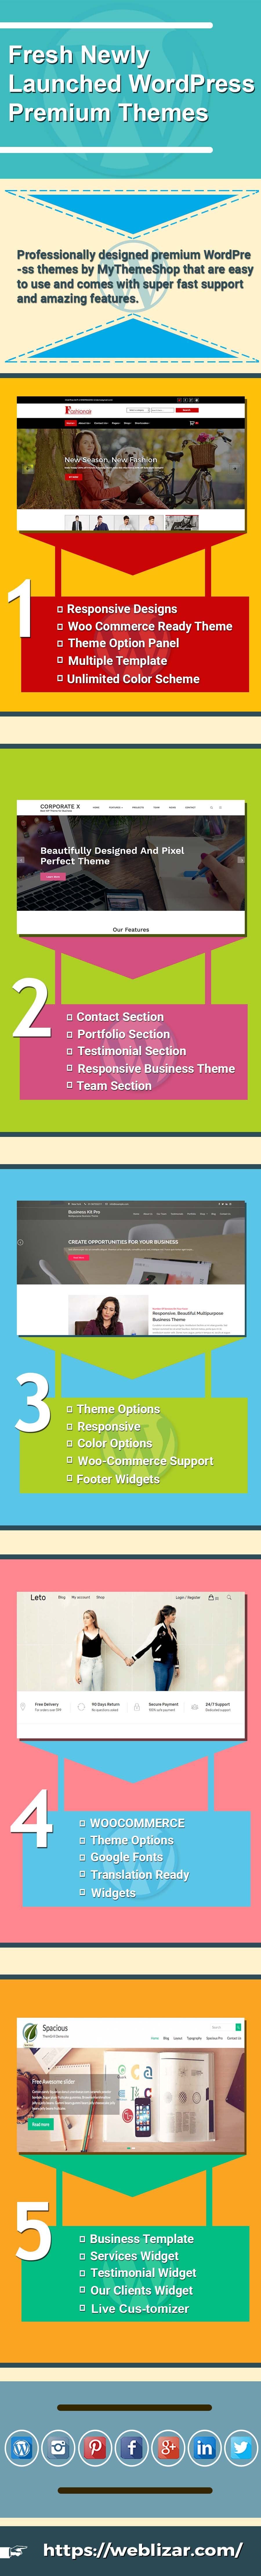 5 newly launched wordpress themes infographic